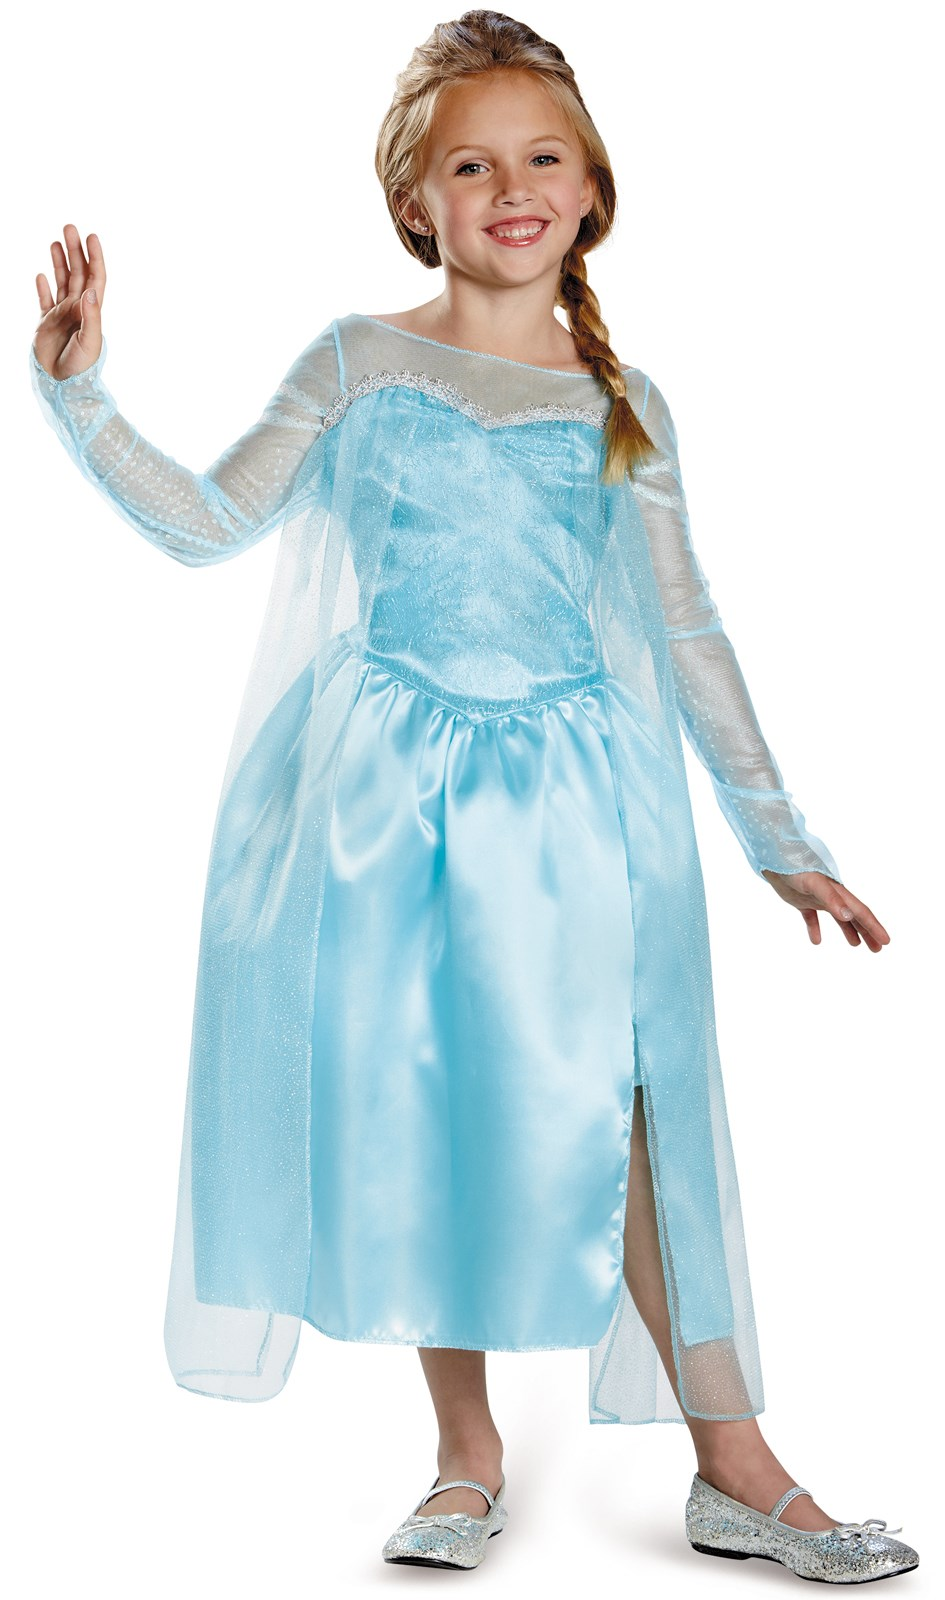 Frozen - Elsa Snow Queen Girls Costume 4-6